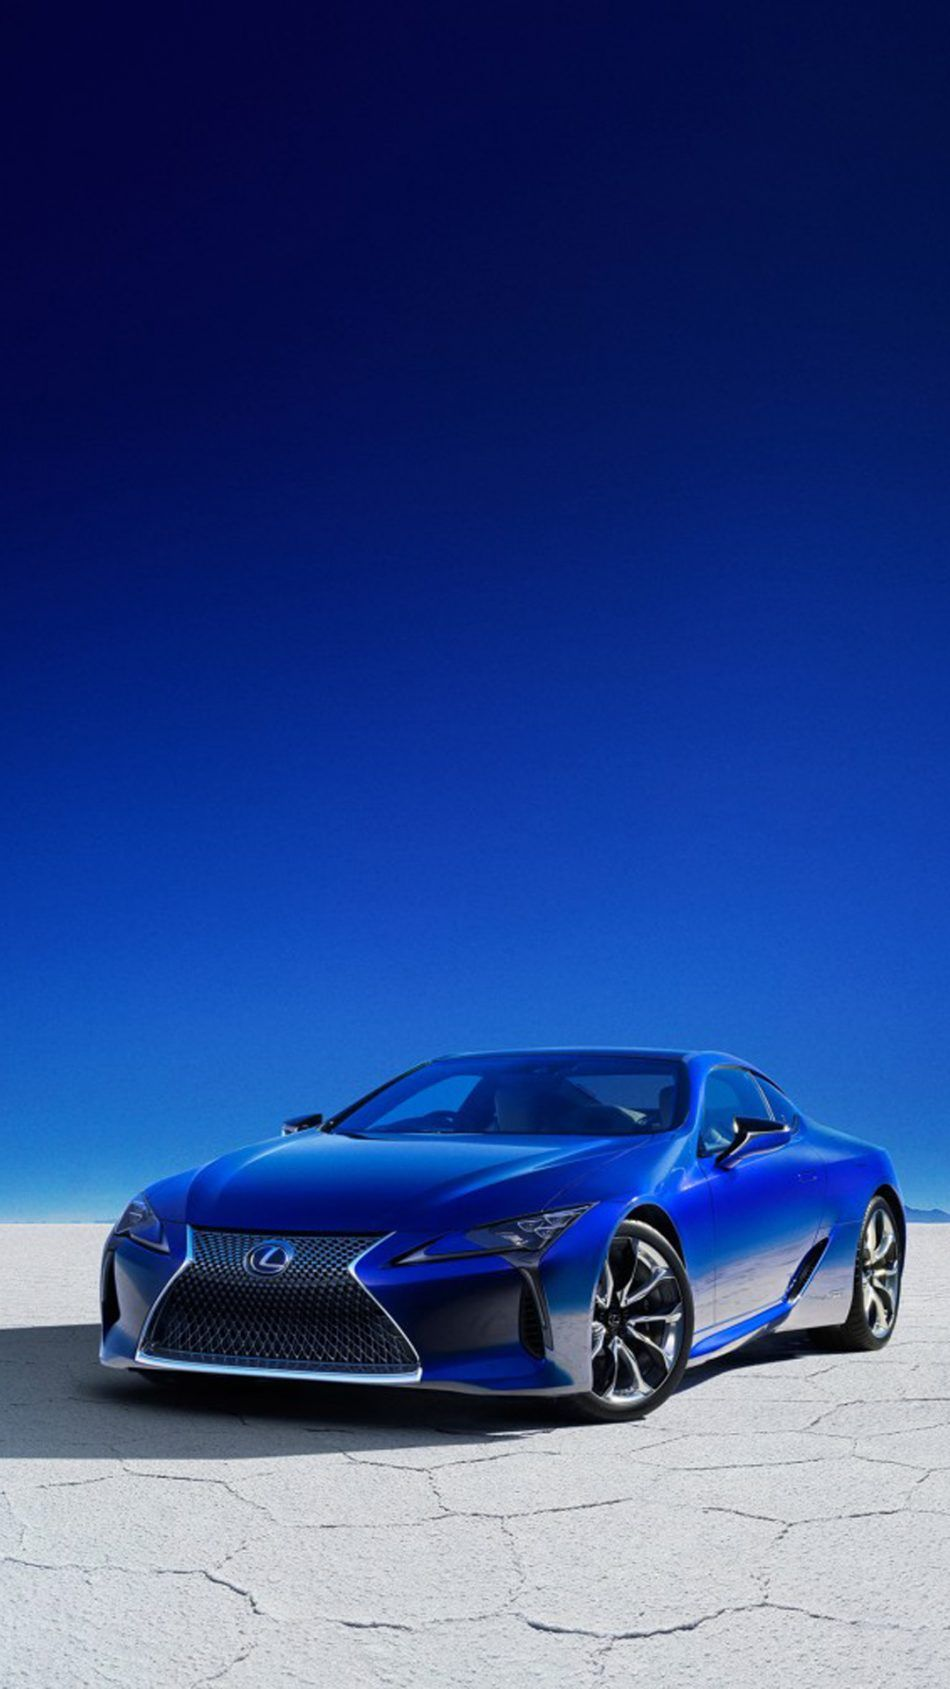 Lexus Lc 500h Structural Blue Edition Hd Mobile Wallpaper Lexus Lc Super Cars Best Luxury Cars